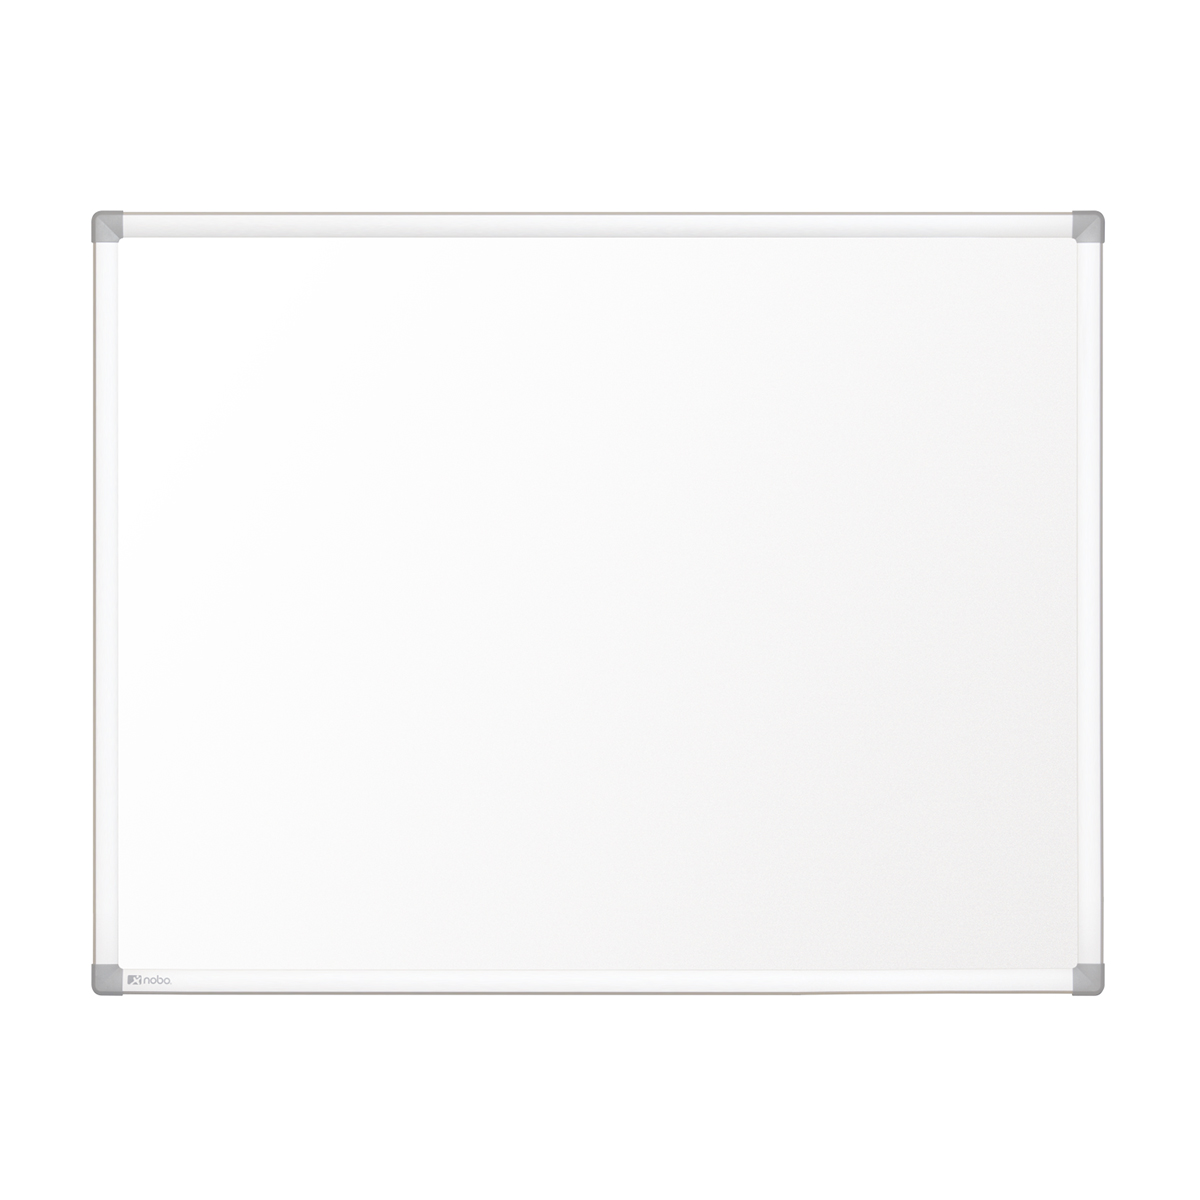 Nobo 1905220 Prestige Enamel Magnetic Whiteboard 900 x 600mm